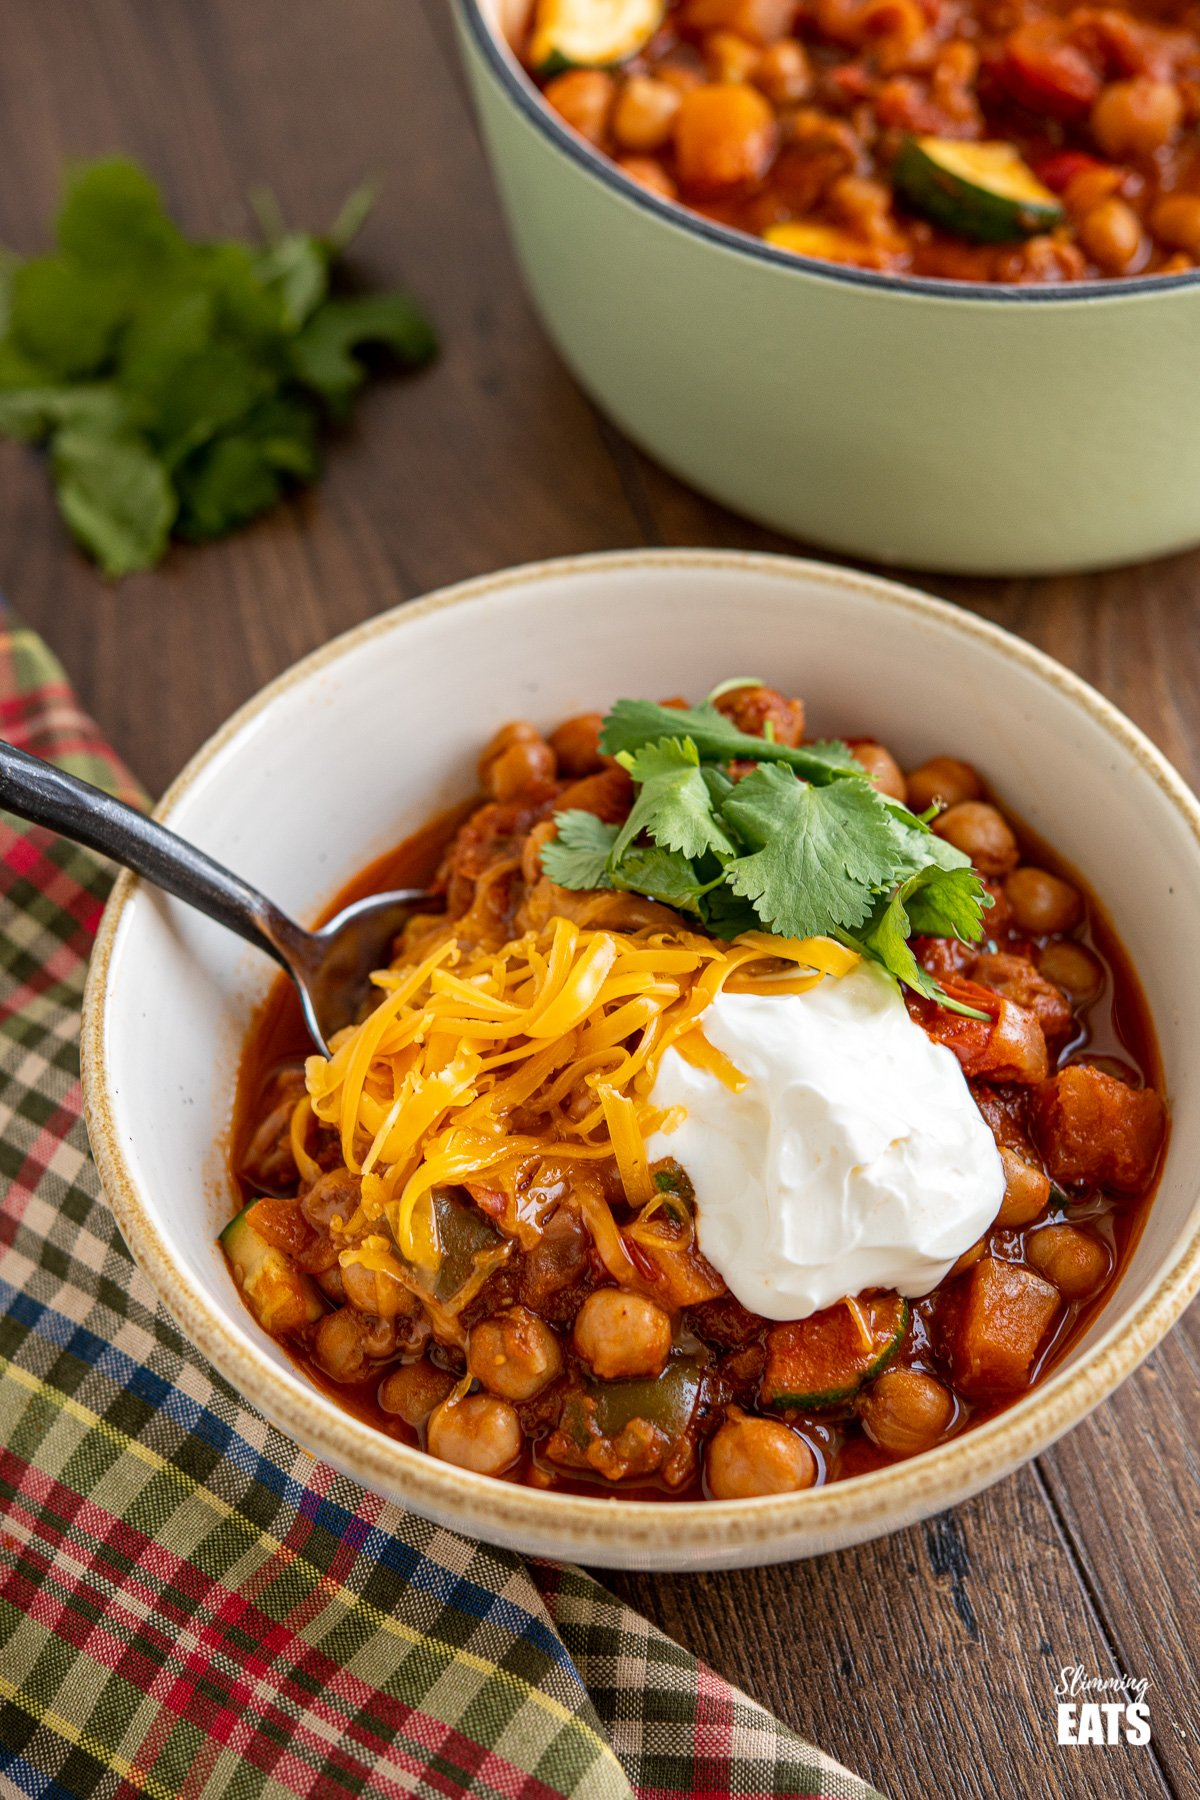 chickpea vegetable chilli in a bowl topped with cheddar, sour cream and cilantro